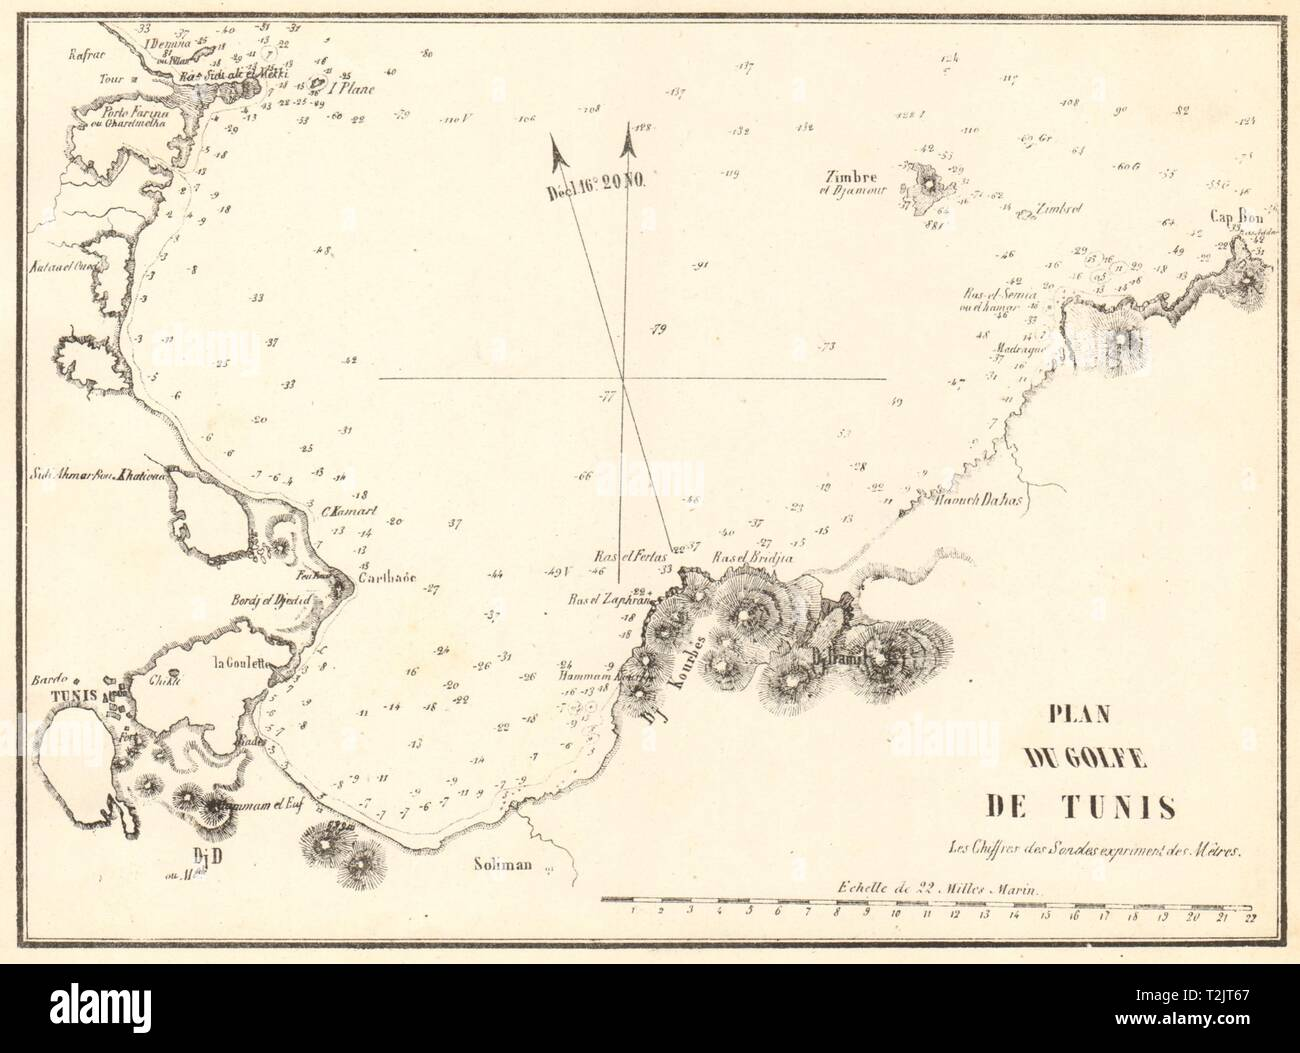 The Gulf of Tunis. 'Plan du Golfe de Tunis'. Tunisia. GAUTTIER 1851 old map - Stock Image